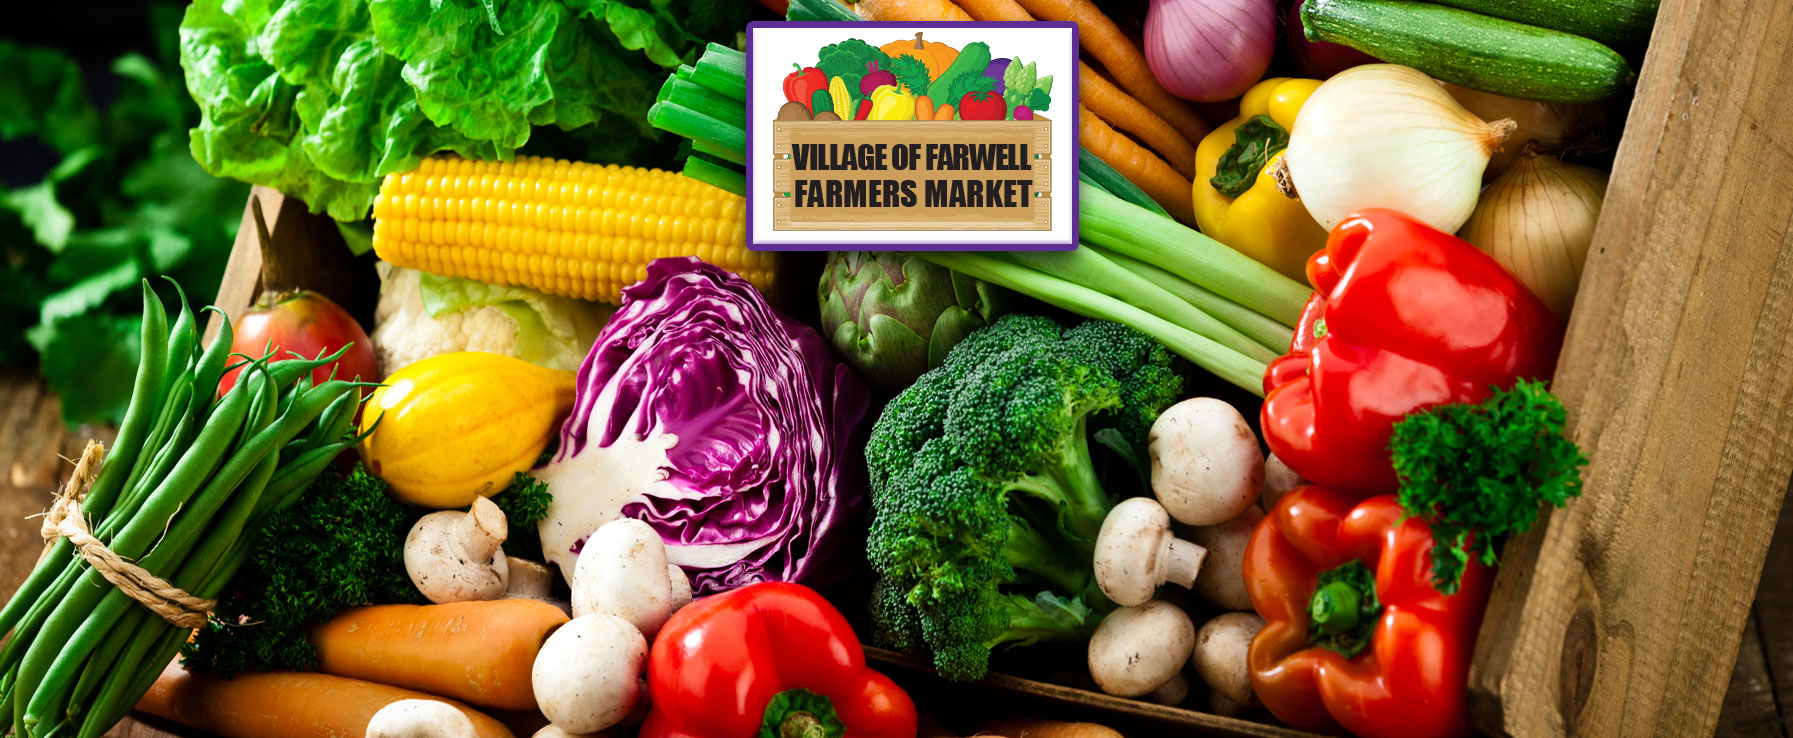 Welcome to Farwell Farmers' Market